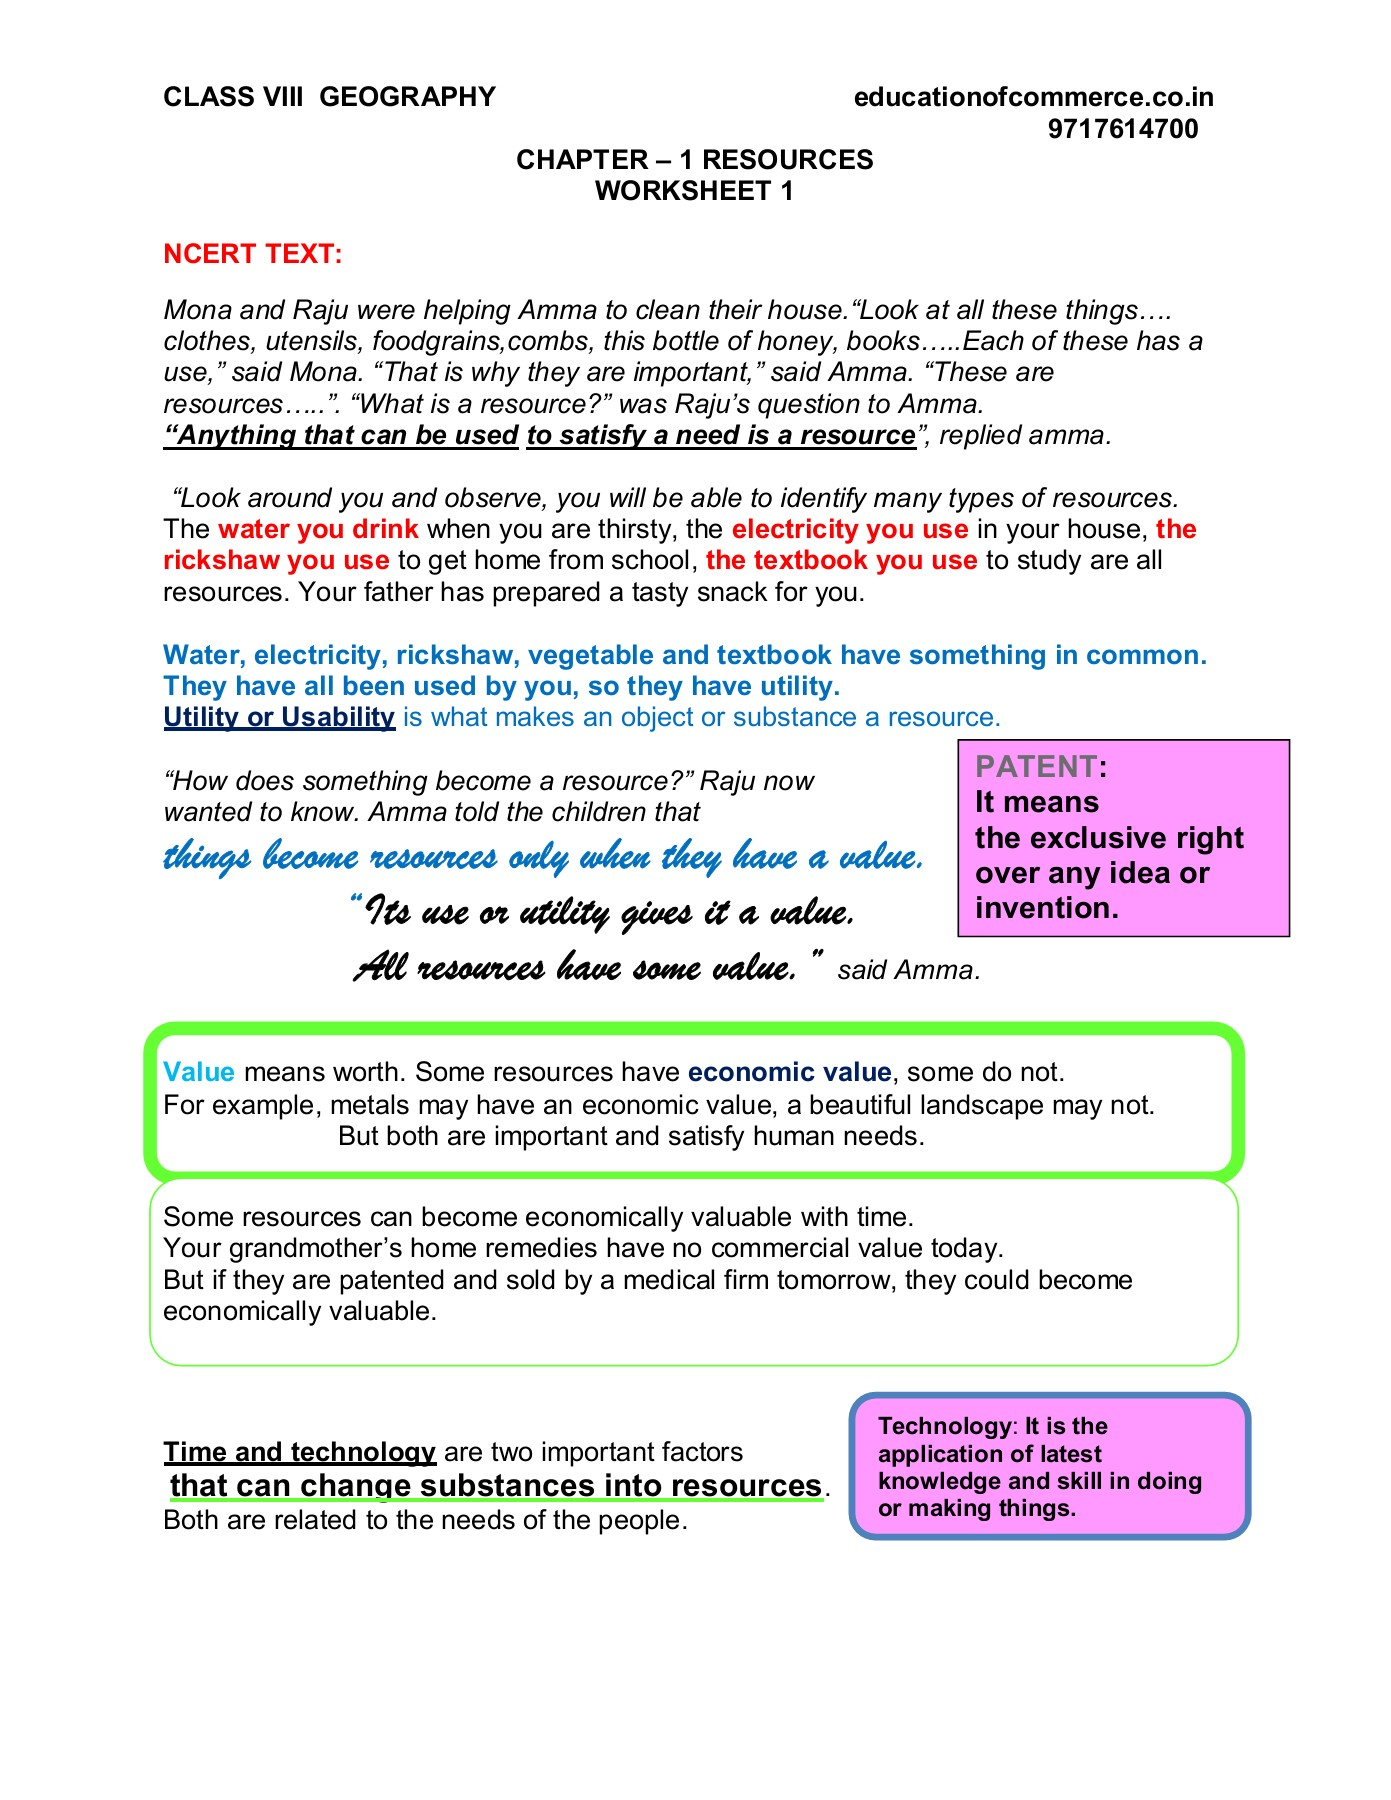 Worksheet 1 - Geography (Grade VIII) - Chapter - 1 (Resources) - Topic  Utility [ 1800 x 1391 Pixel ]